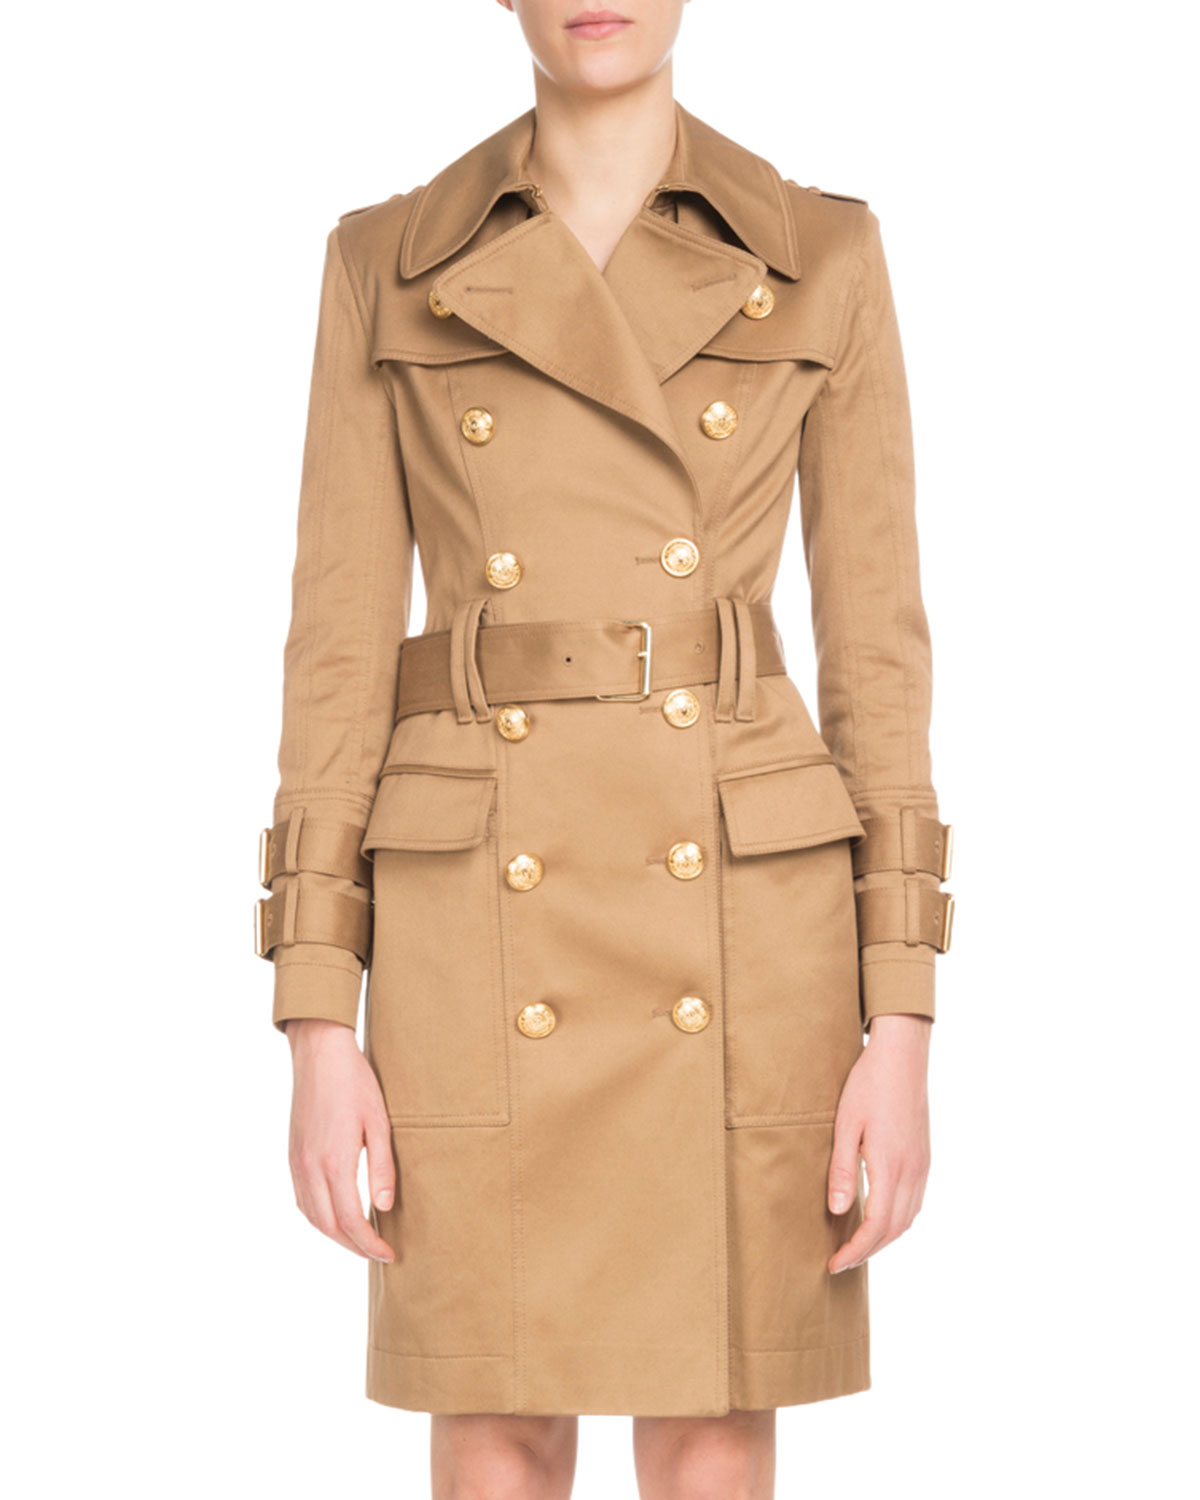 Balmain Coats DOUBLE-BREASTED GOLDEN-BUTTON BELTED TRENCH COAT